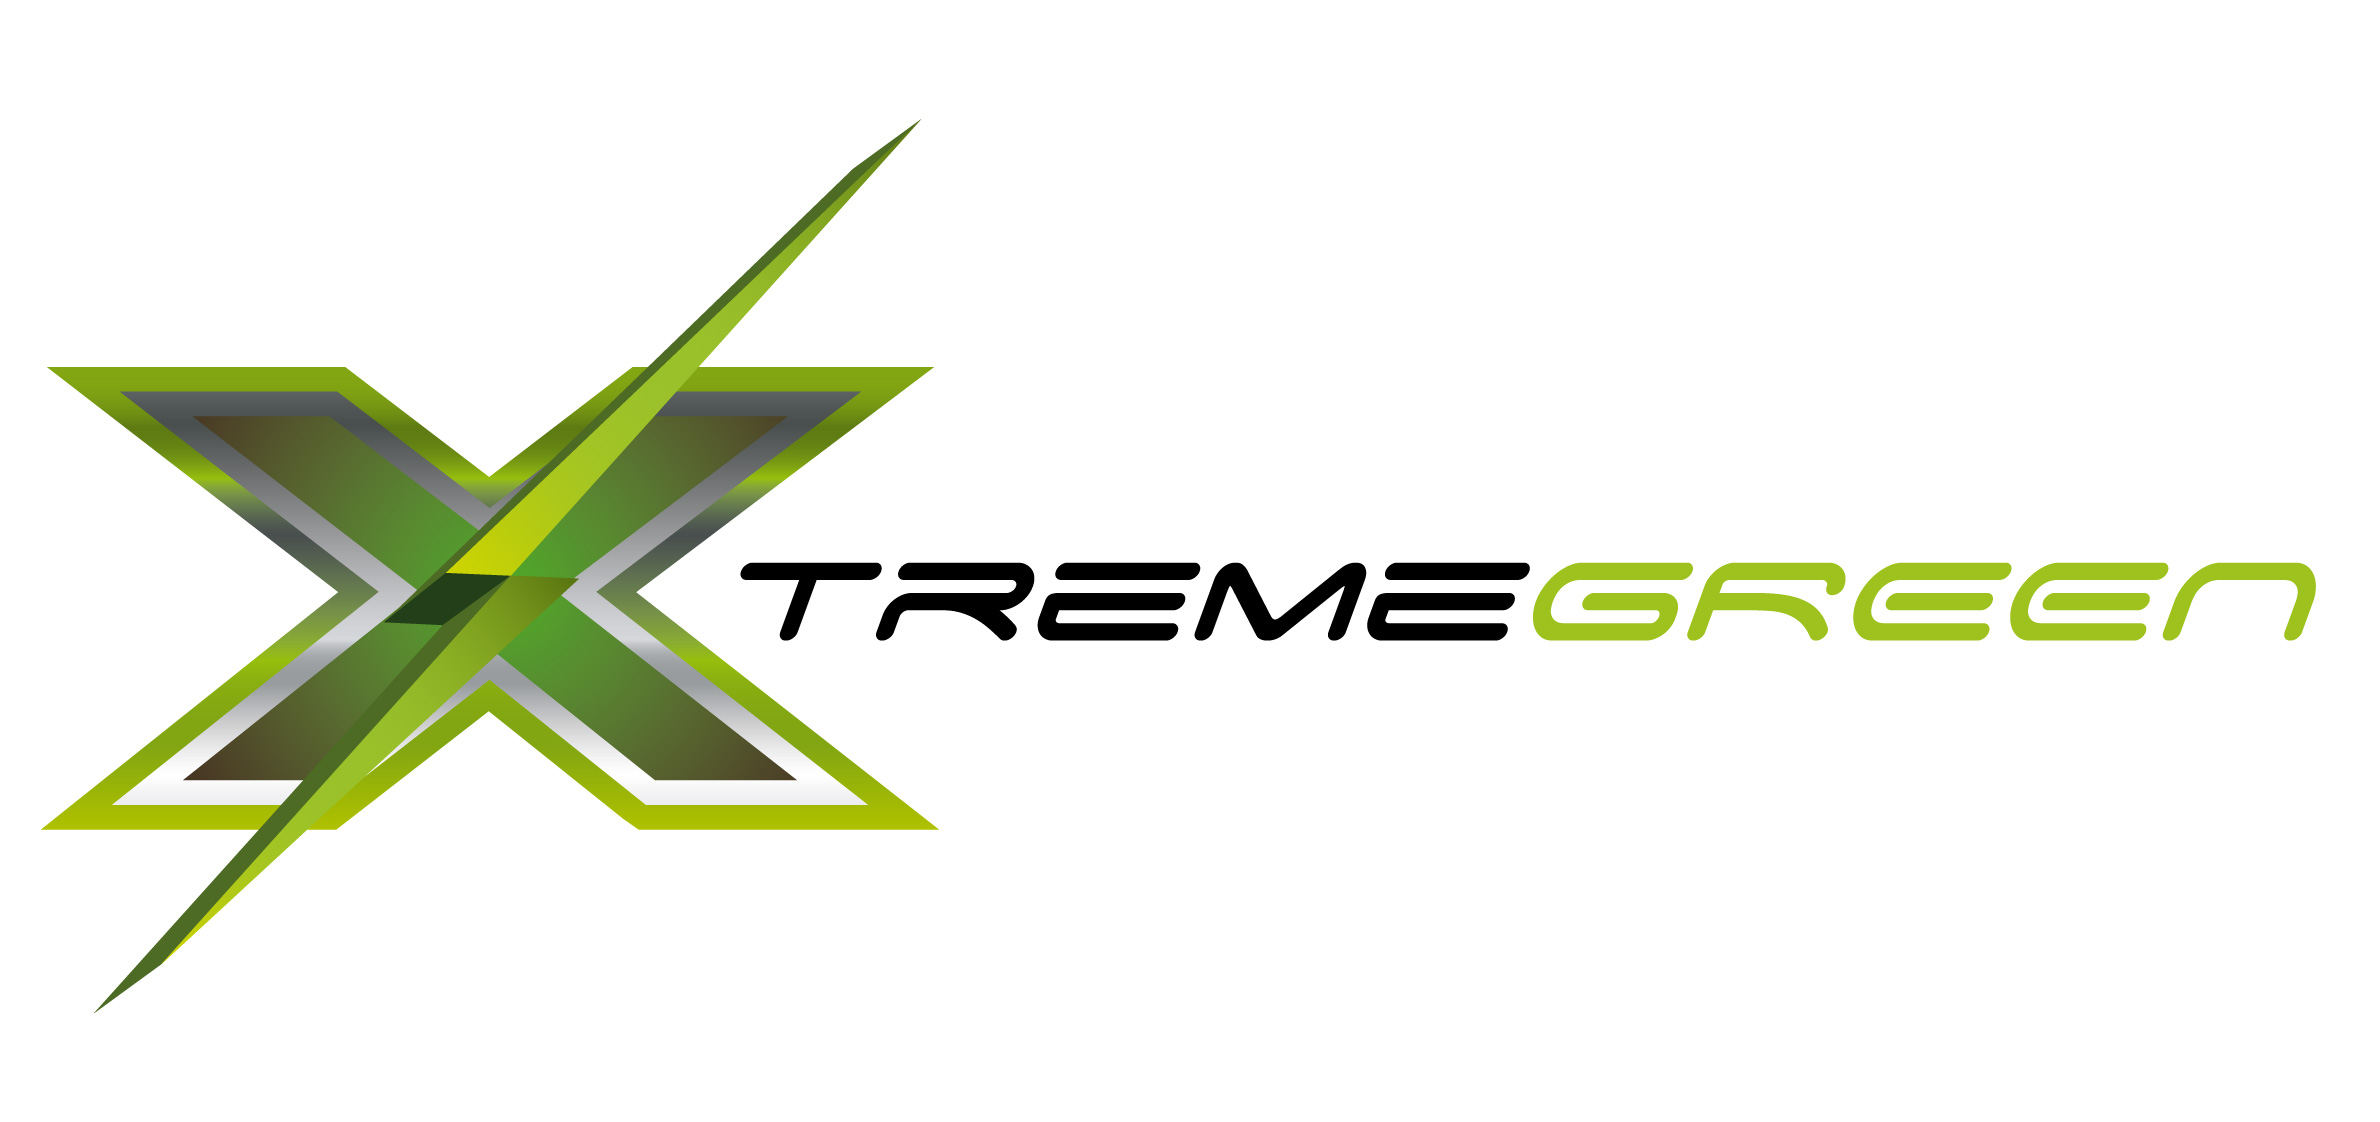 Xtreme Green Products Bringing Electric Hybrid Atv To